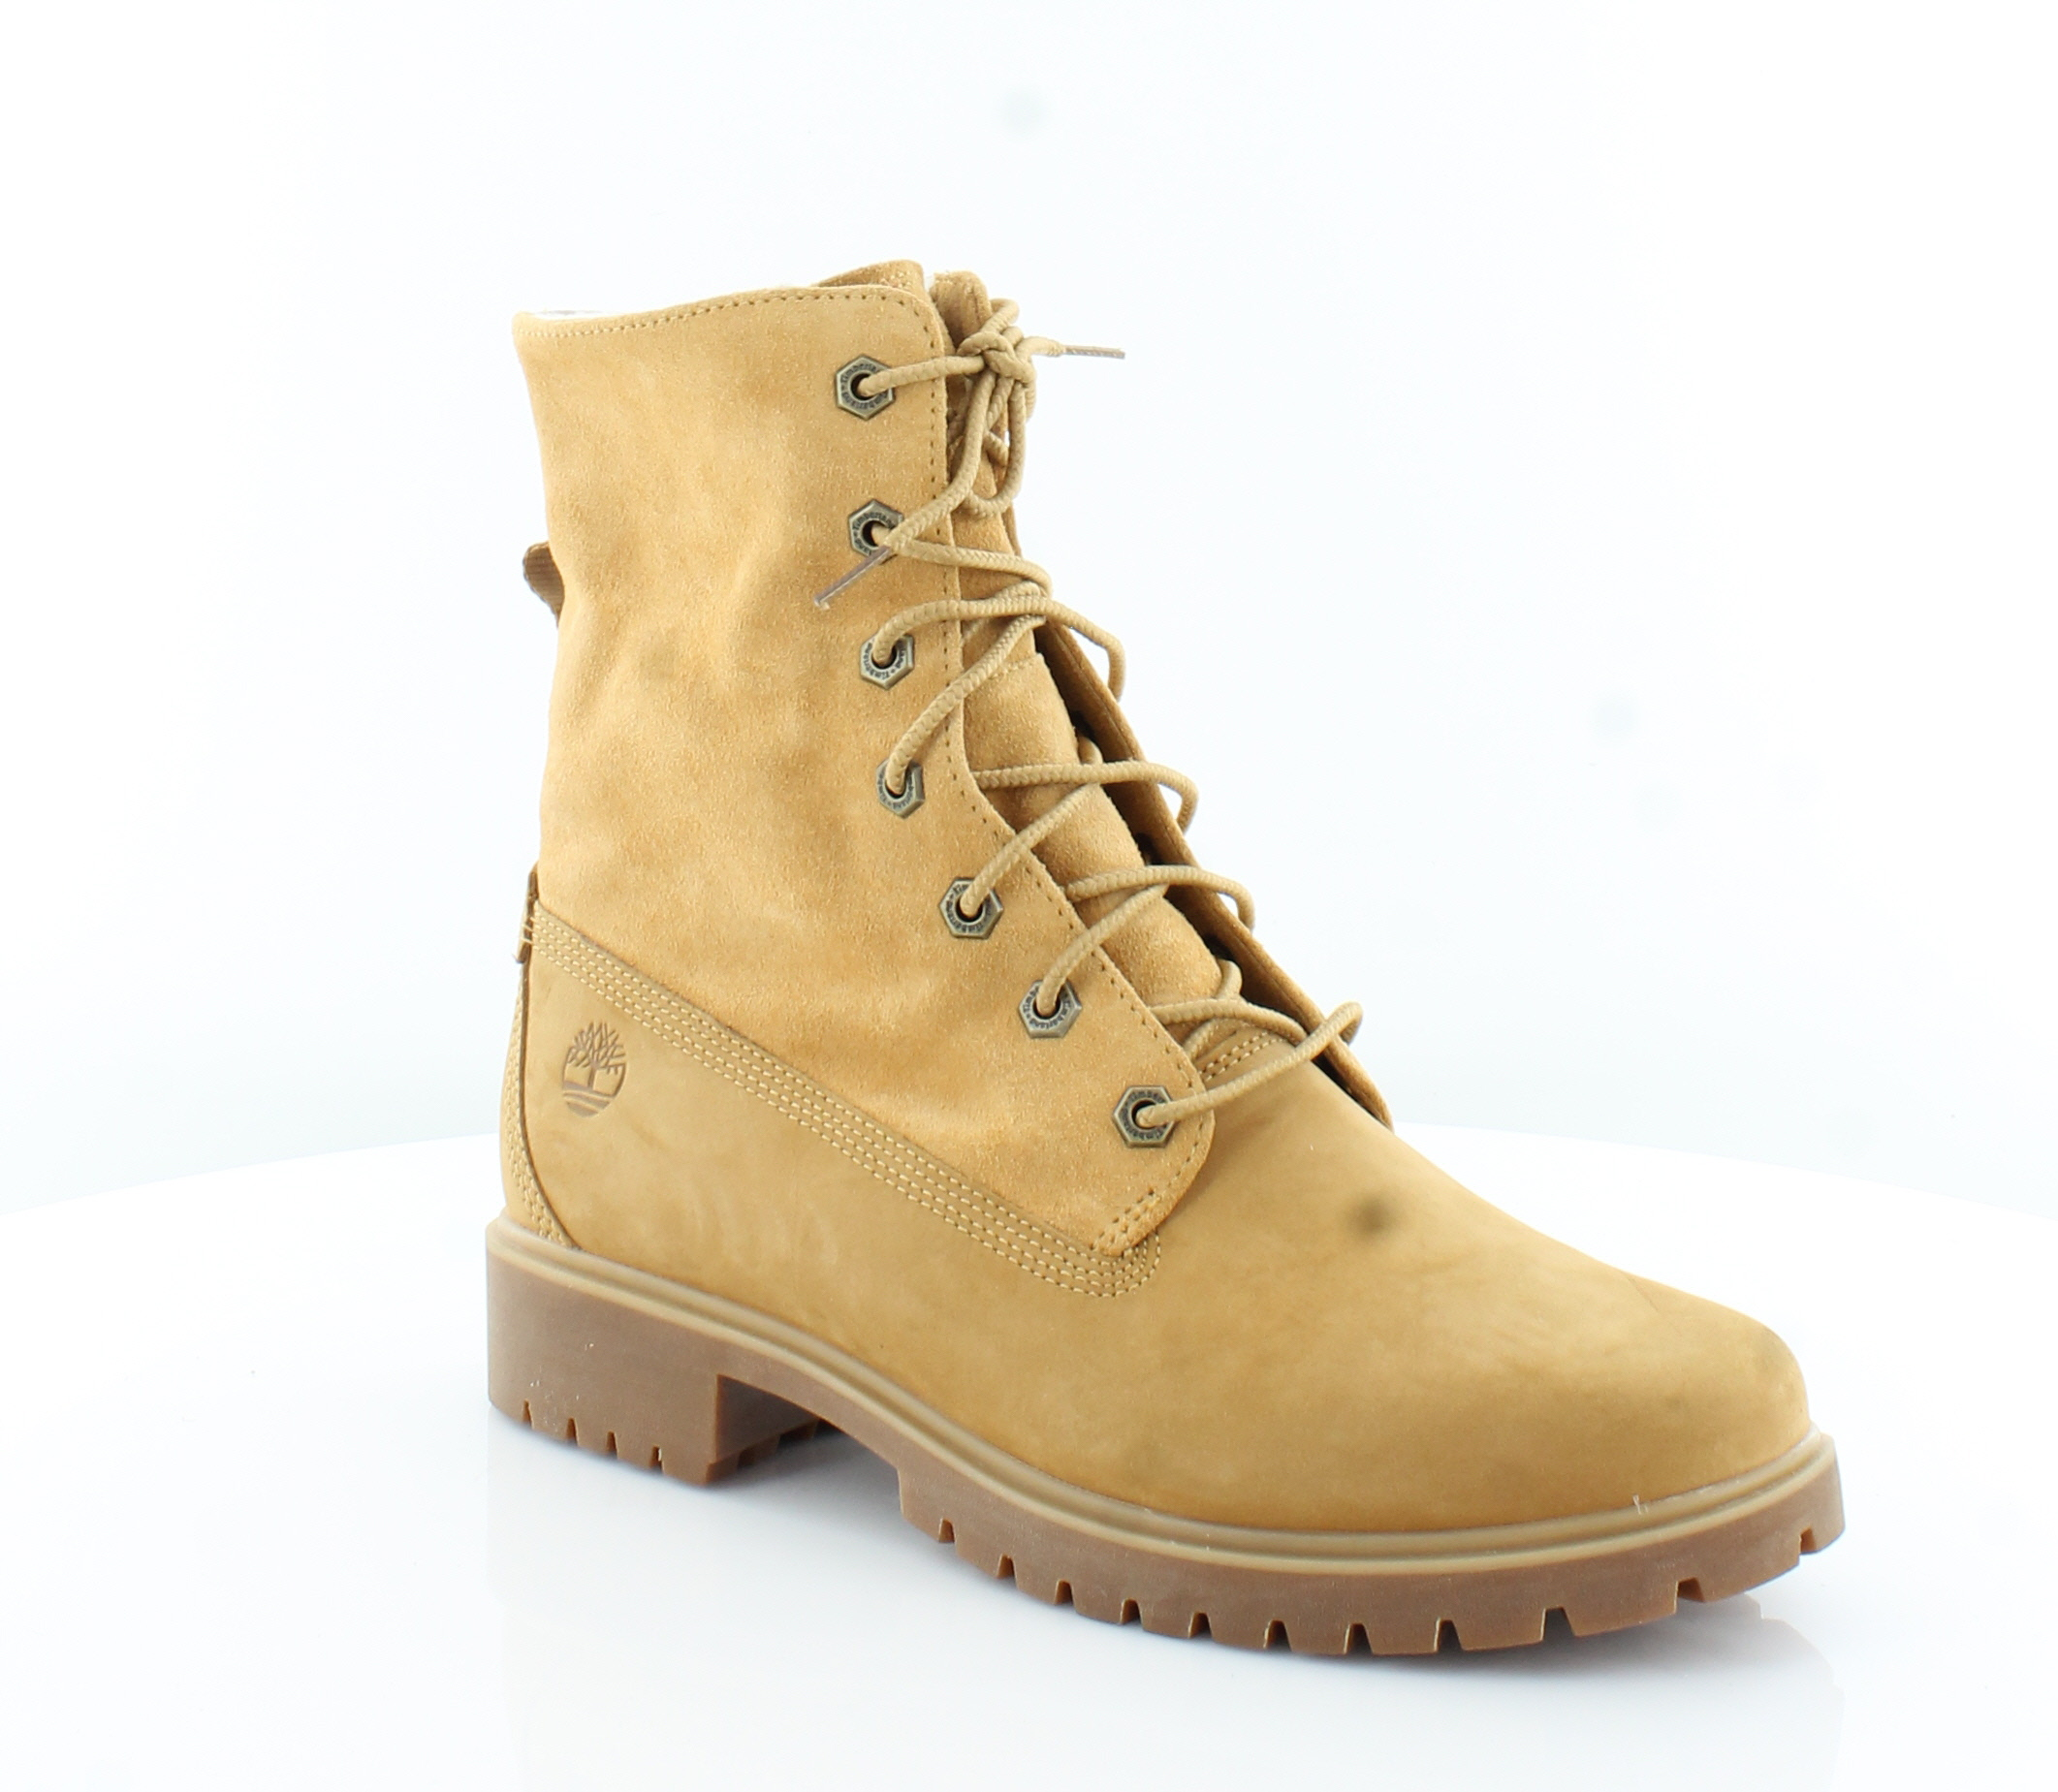 679dcbb80dc Details about Timberland New Jayne Brown Womens Shoes Size 8.5 M Boots MSRP  $160